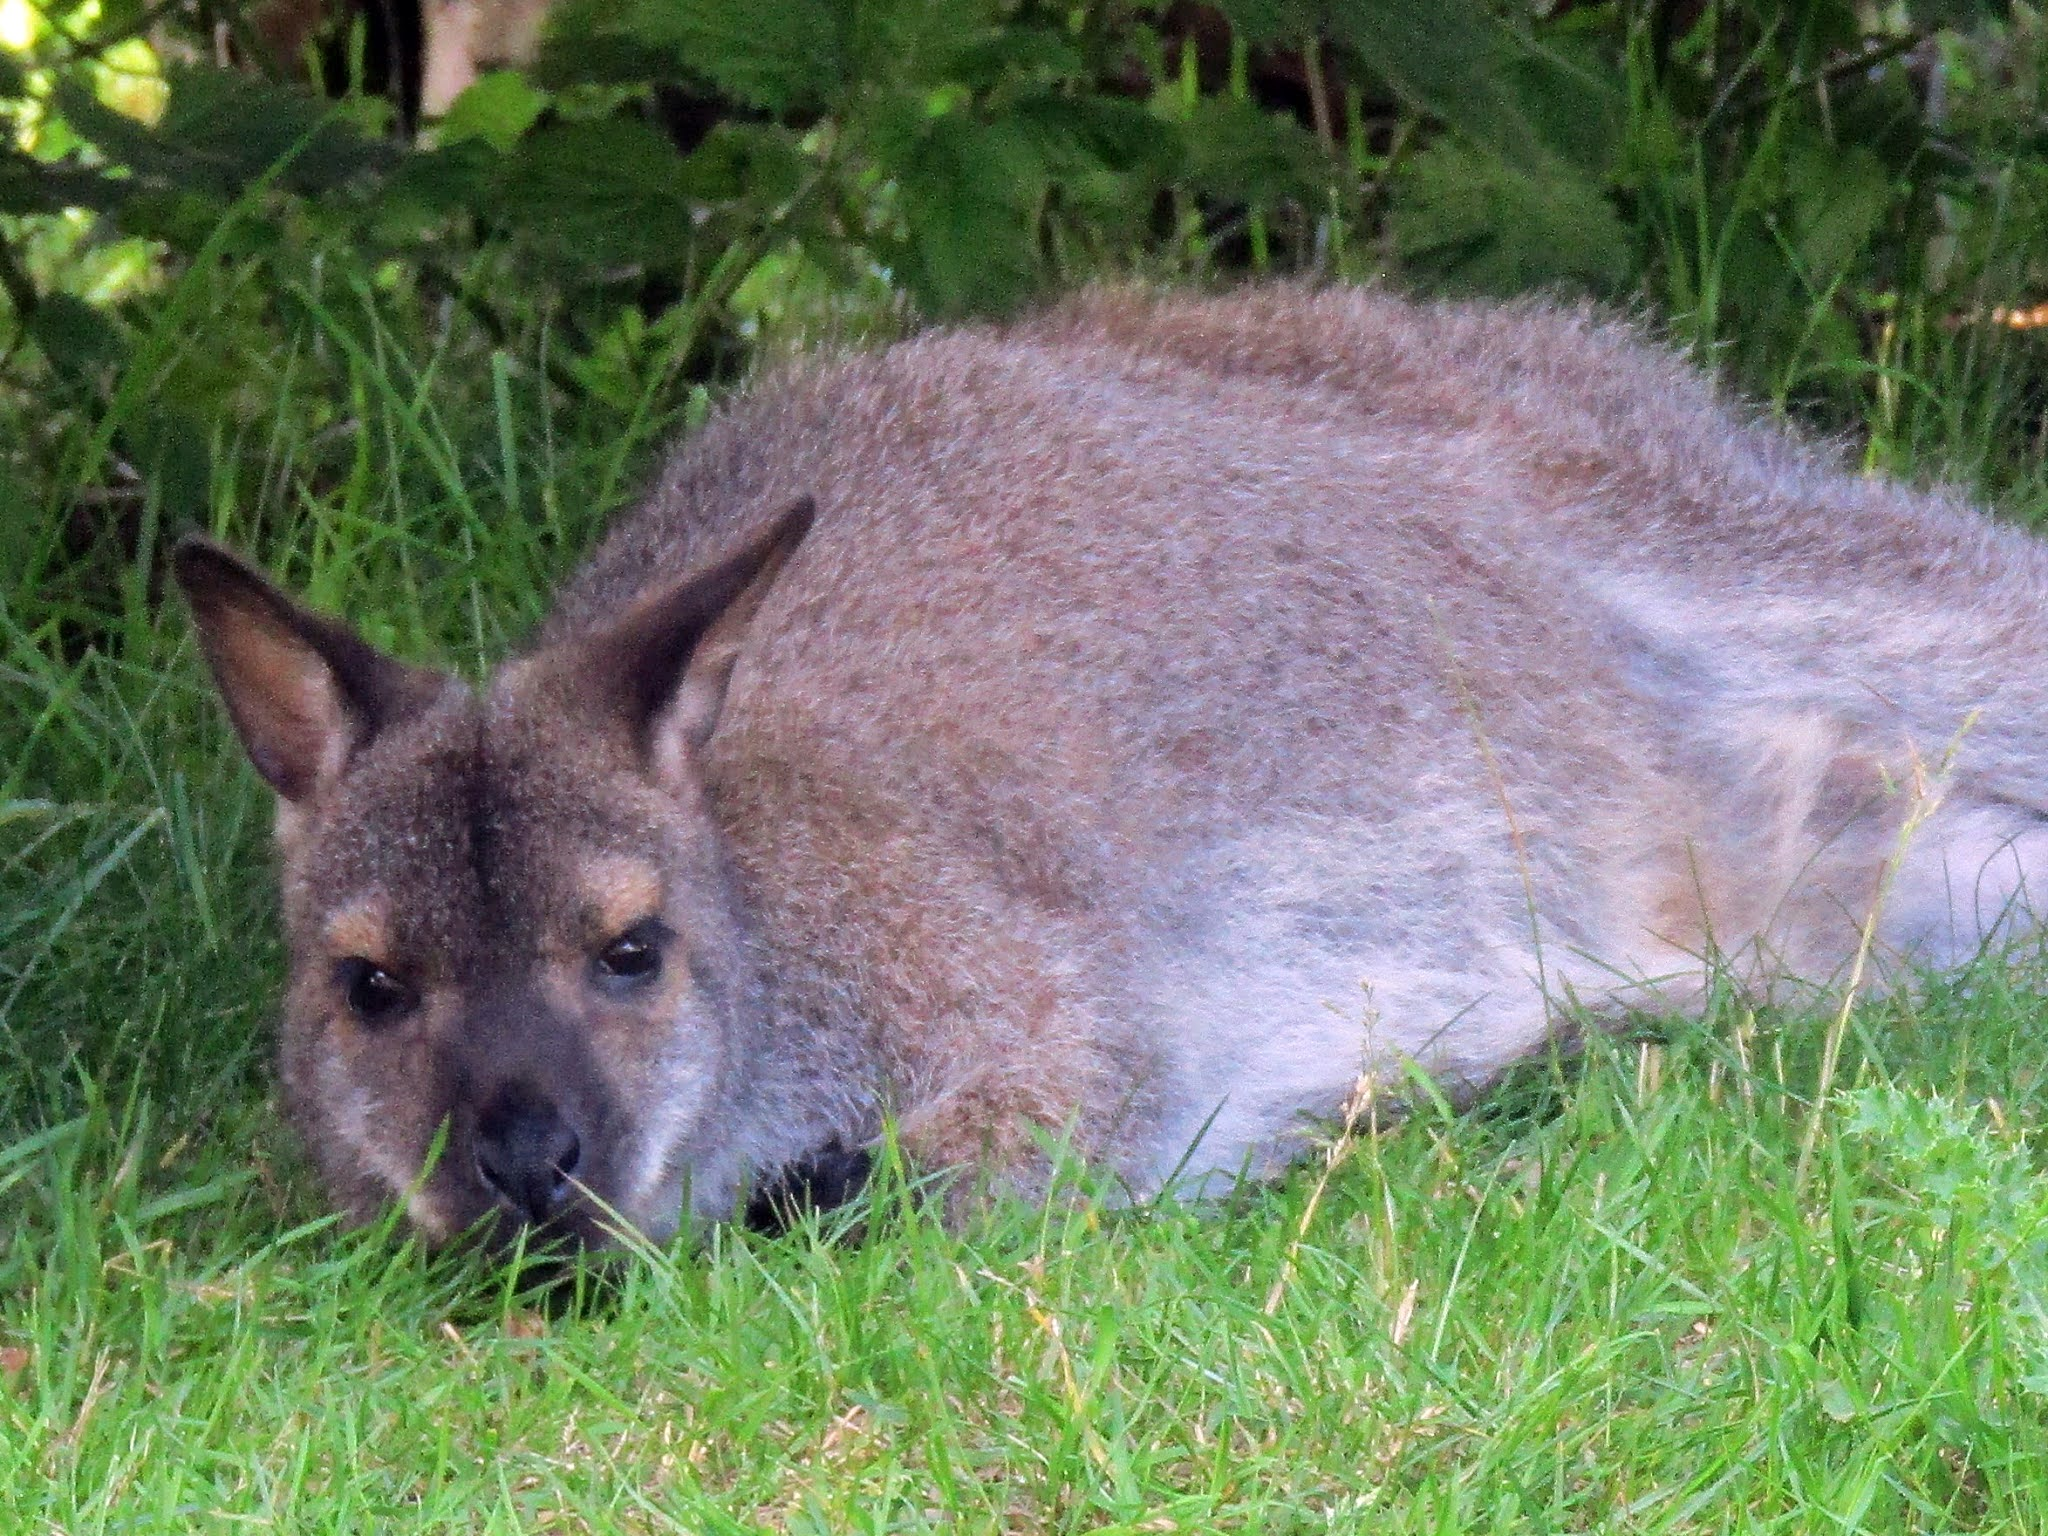 A photo of a wallaby at Whipsnade Zoo.